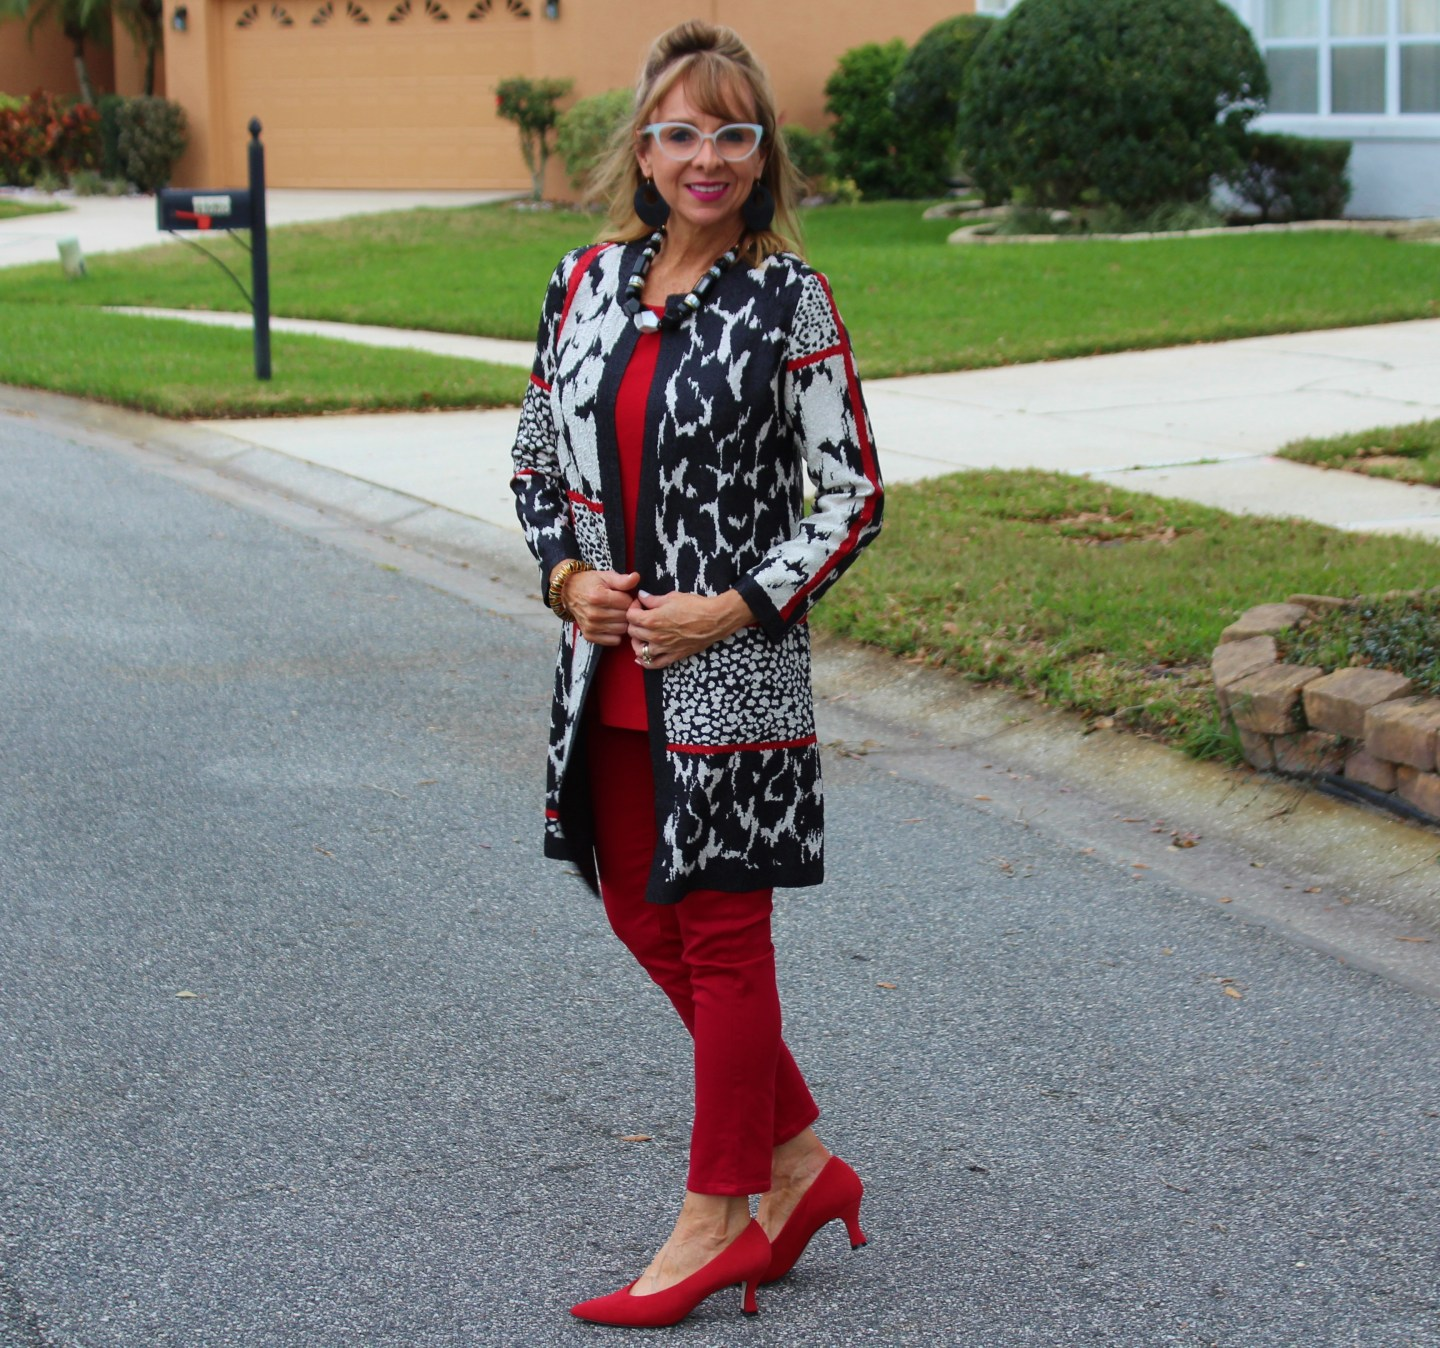 Chicos Reversible Jacket + Faux leather leggings + Red Pumps